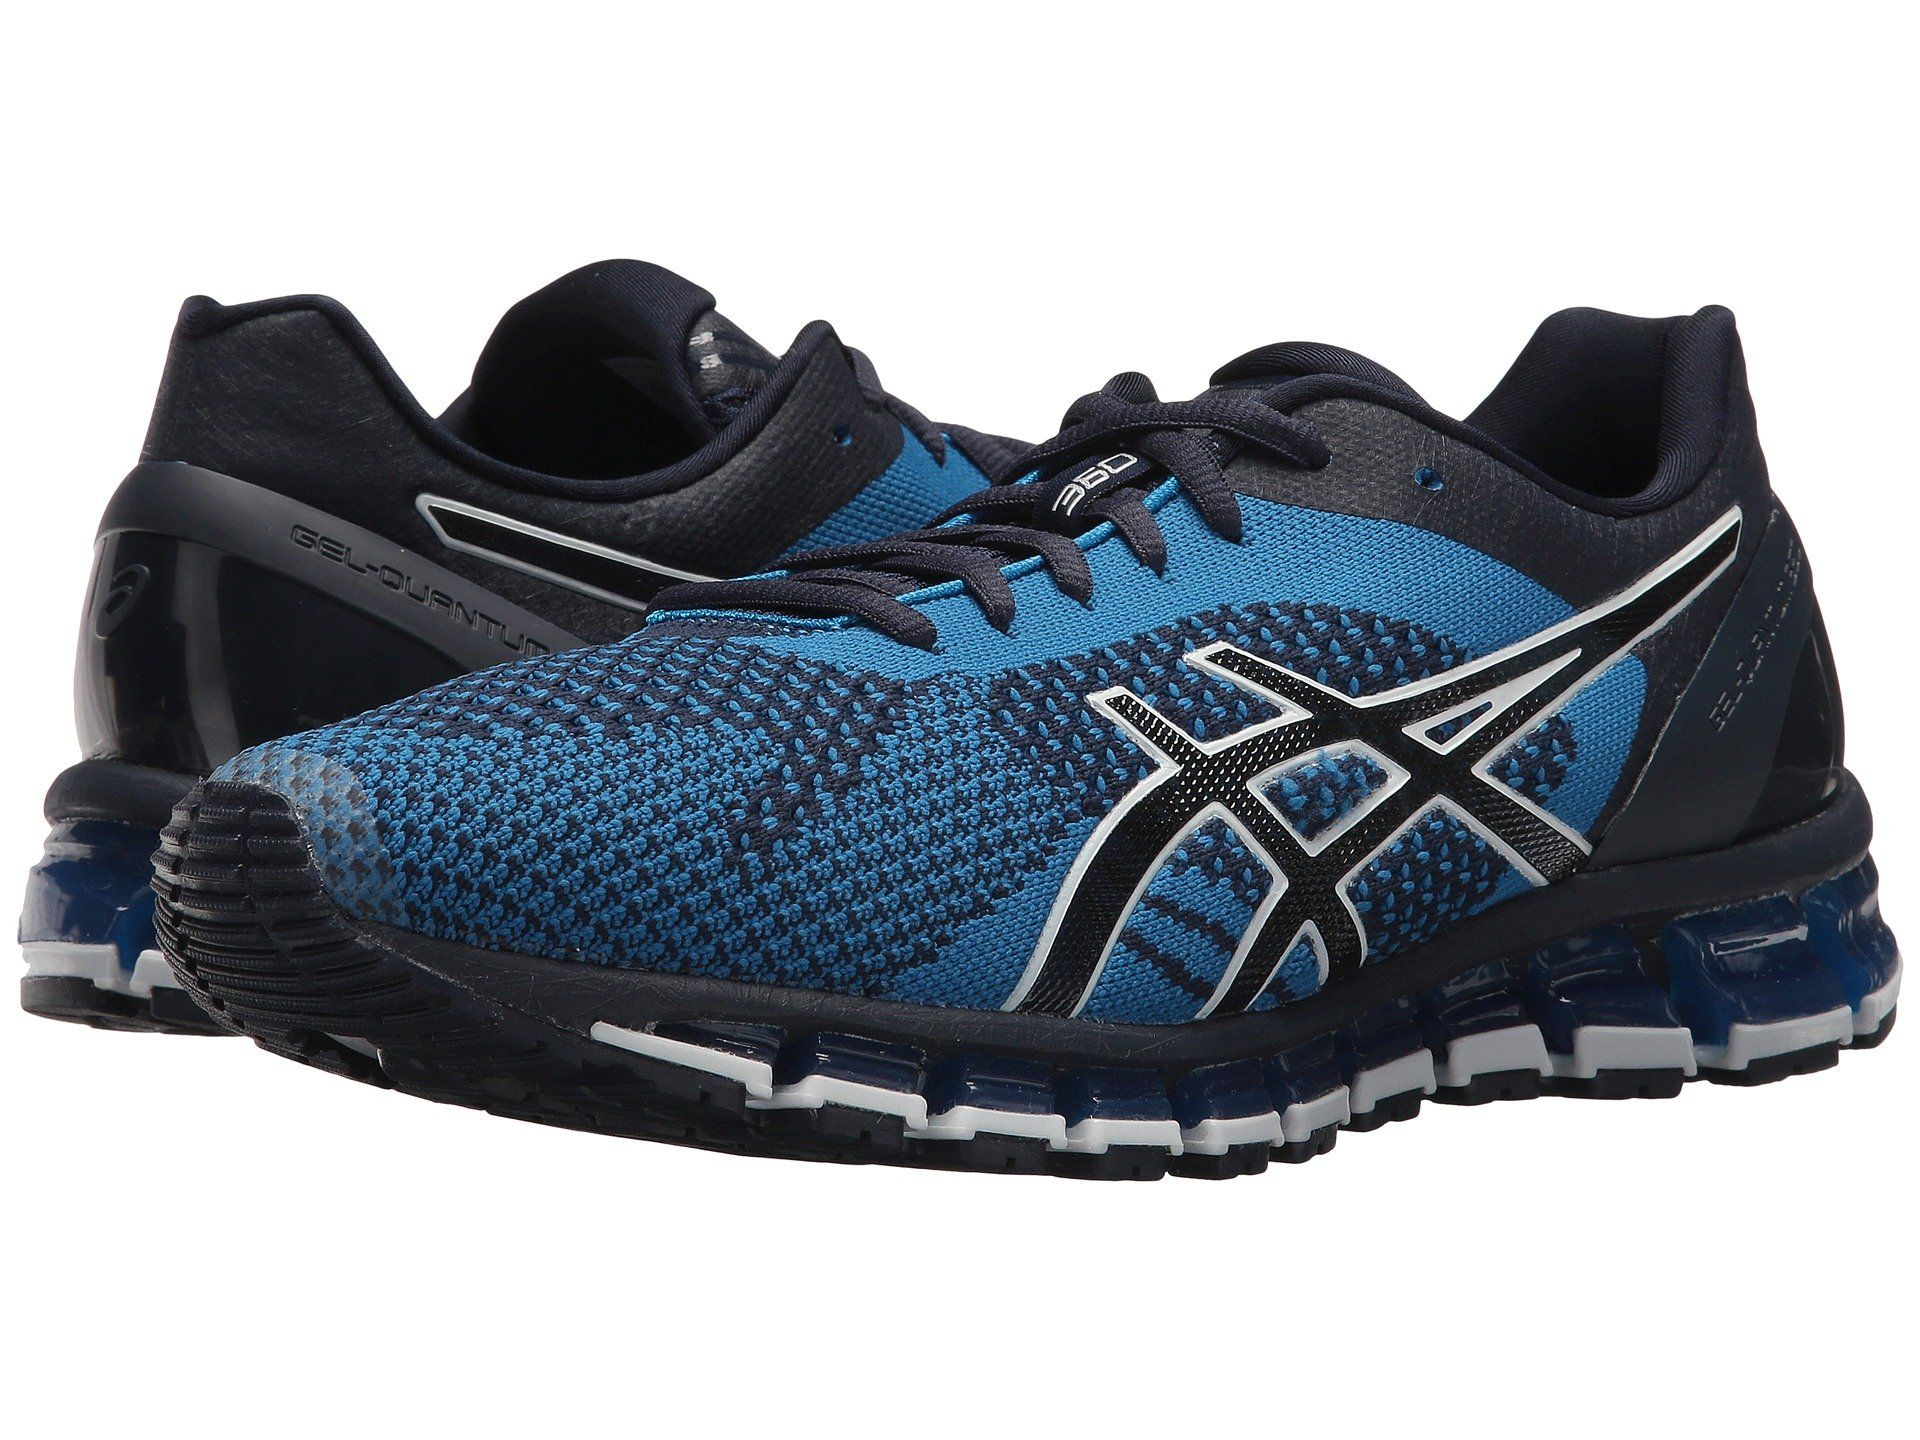 f604f18869 ASICS GEL-Quantum 360 Knit.  asics  shoes